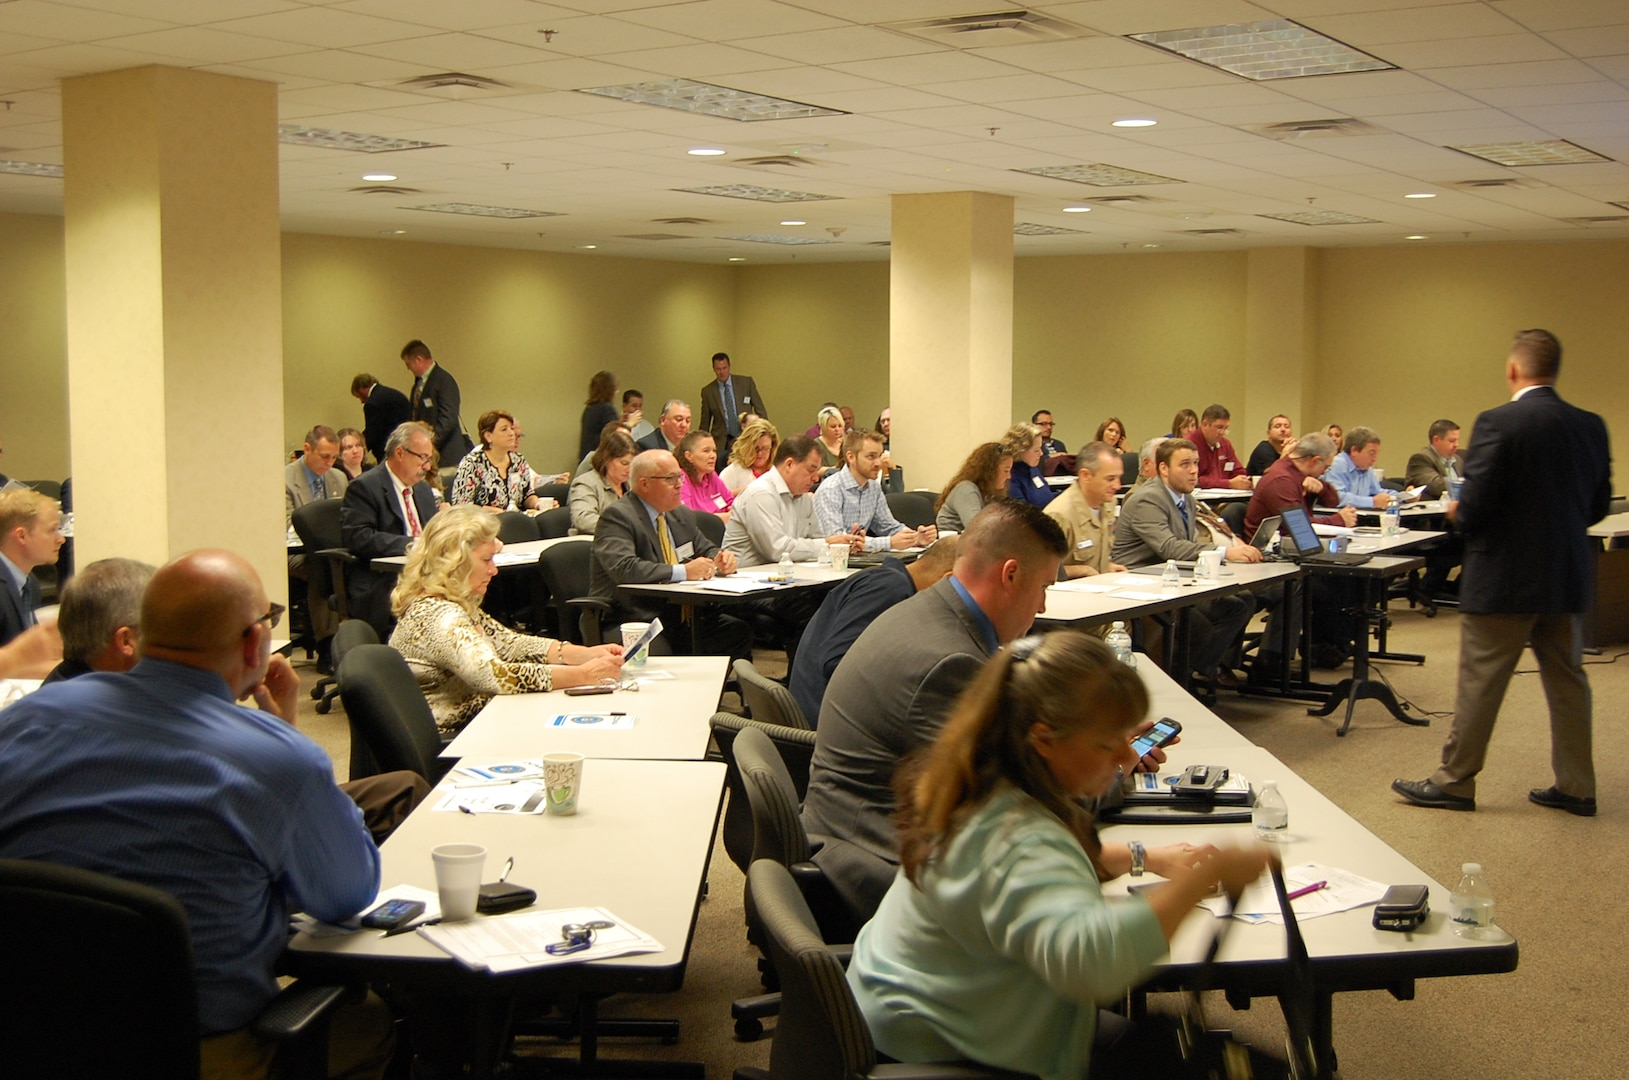 Defense Contract Management Agency Pittsburgh hosted its first defense contractor town hall at the William S. Moorhead federal building Oct. 18. Approximately 80 people attended the event. (Photo courtesy of DCMA Pittsburgh)